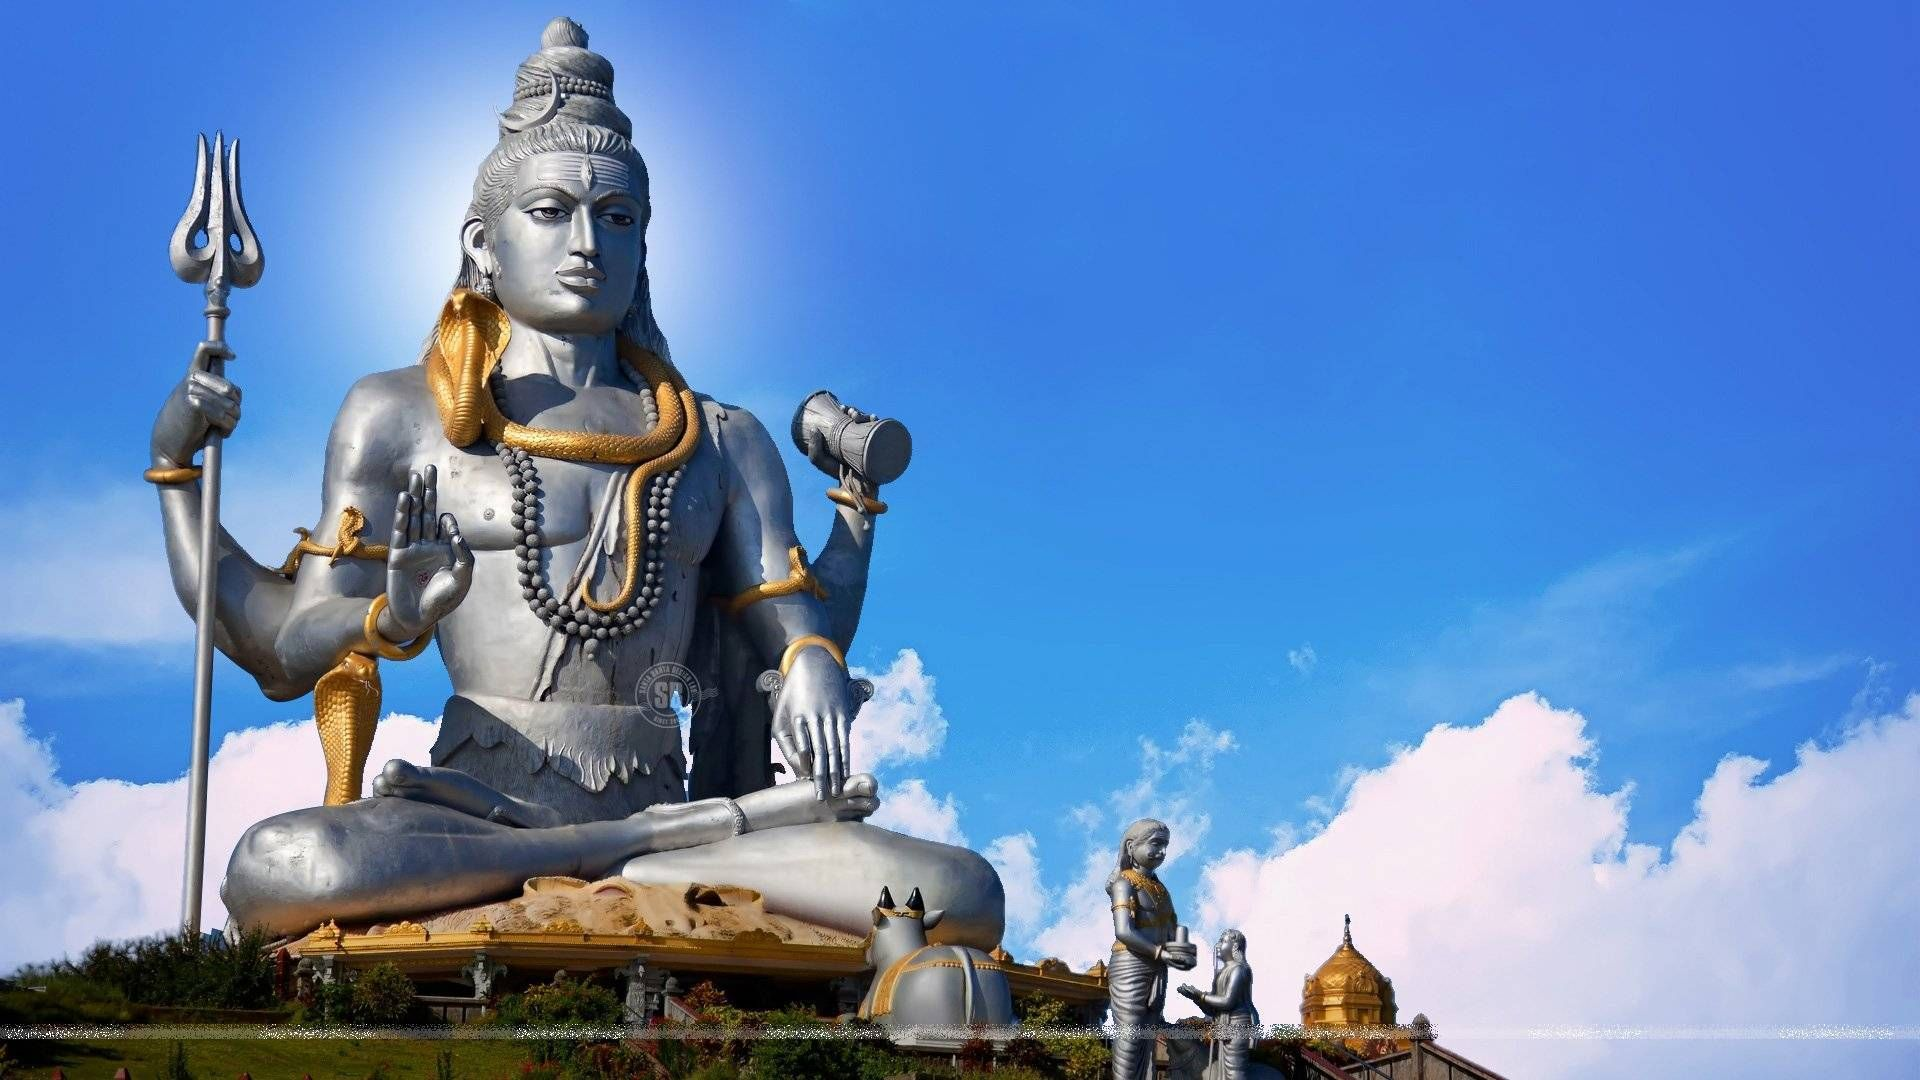 Lord Shiva Hd Wallpapers For Android Mobile Lord Shiva Hd Images Lord Shiva Lord Shiva Hd Wallpaper